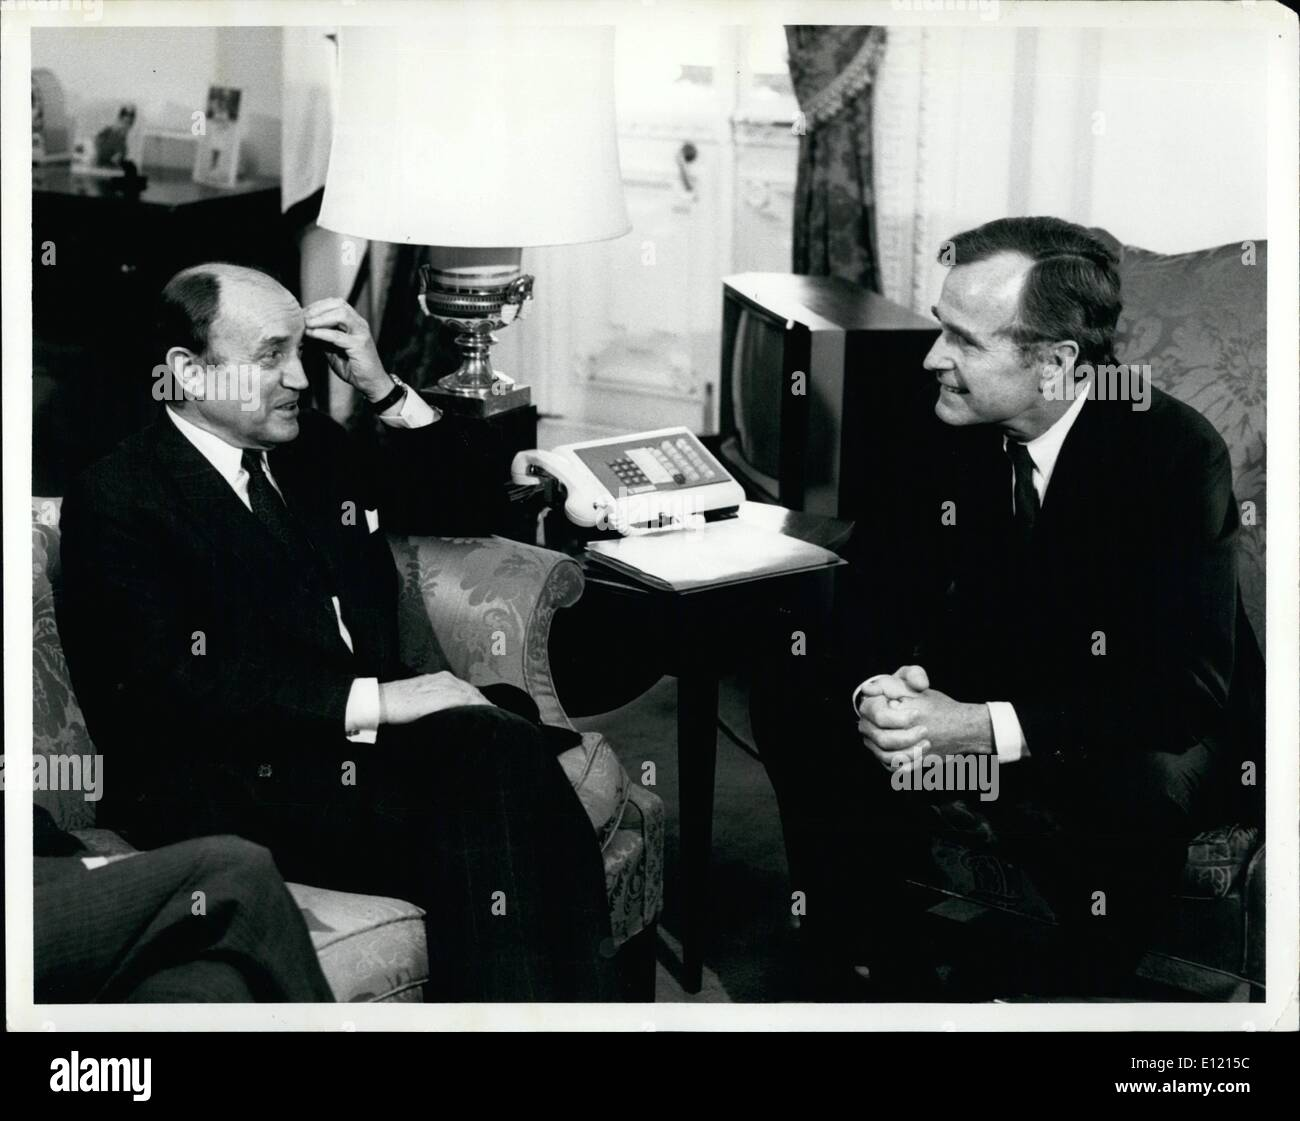 Jun. 06, 1981 - Vice President George Bush (right) is shown in his office of the Executive office Building next to the White House today as he met with visiting French Foreign Minister Claude Cheysson (left). Earlier Cheysson met with President Reagan at the White House and will hold other meeting with Secretary of State Alexander Haig at The State Department. - Stock Image